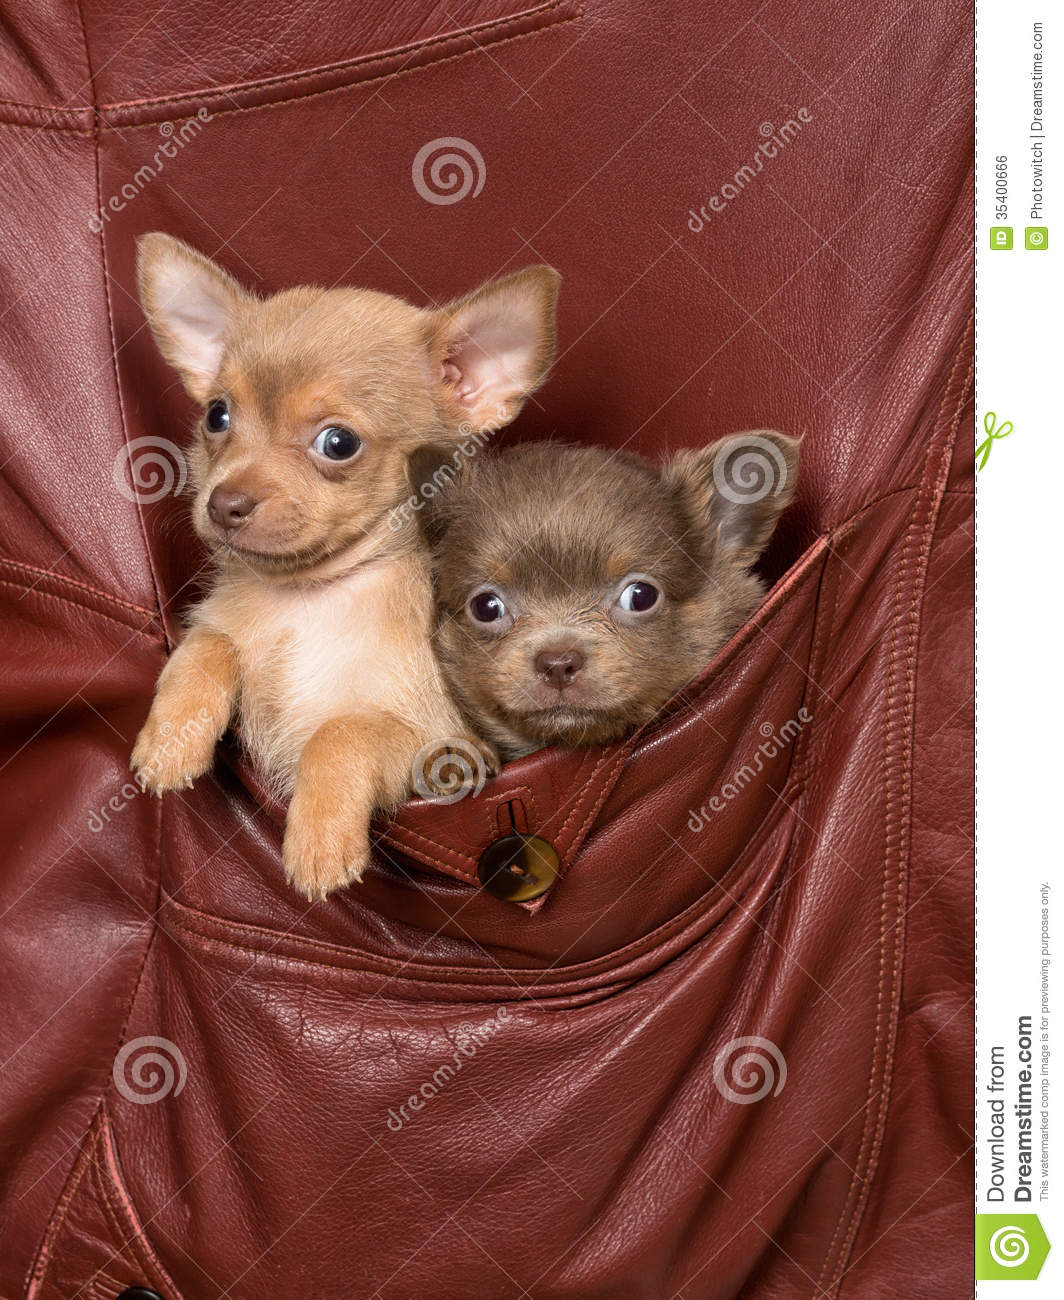 dogs in a jacket pocket royalty free stock image